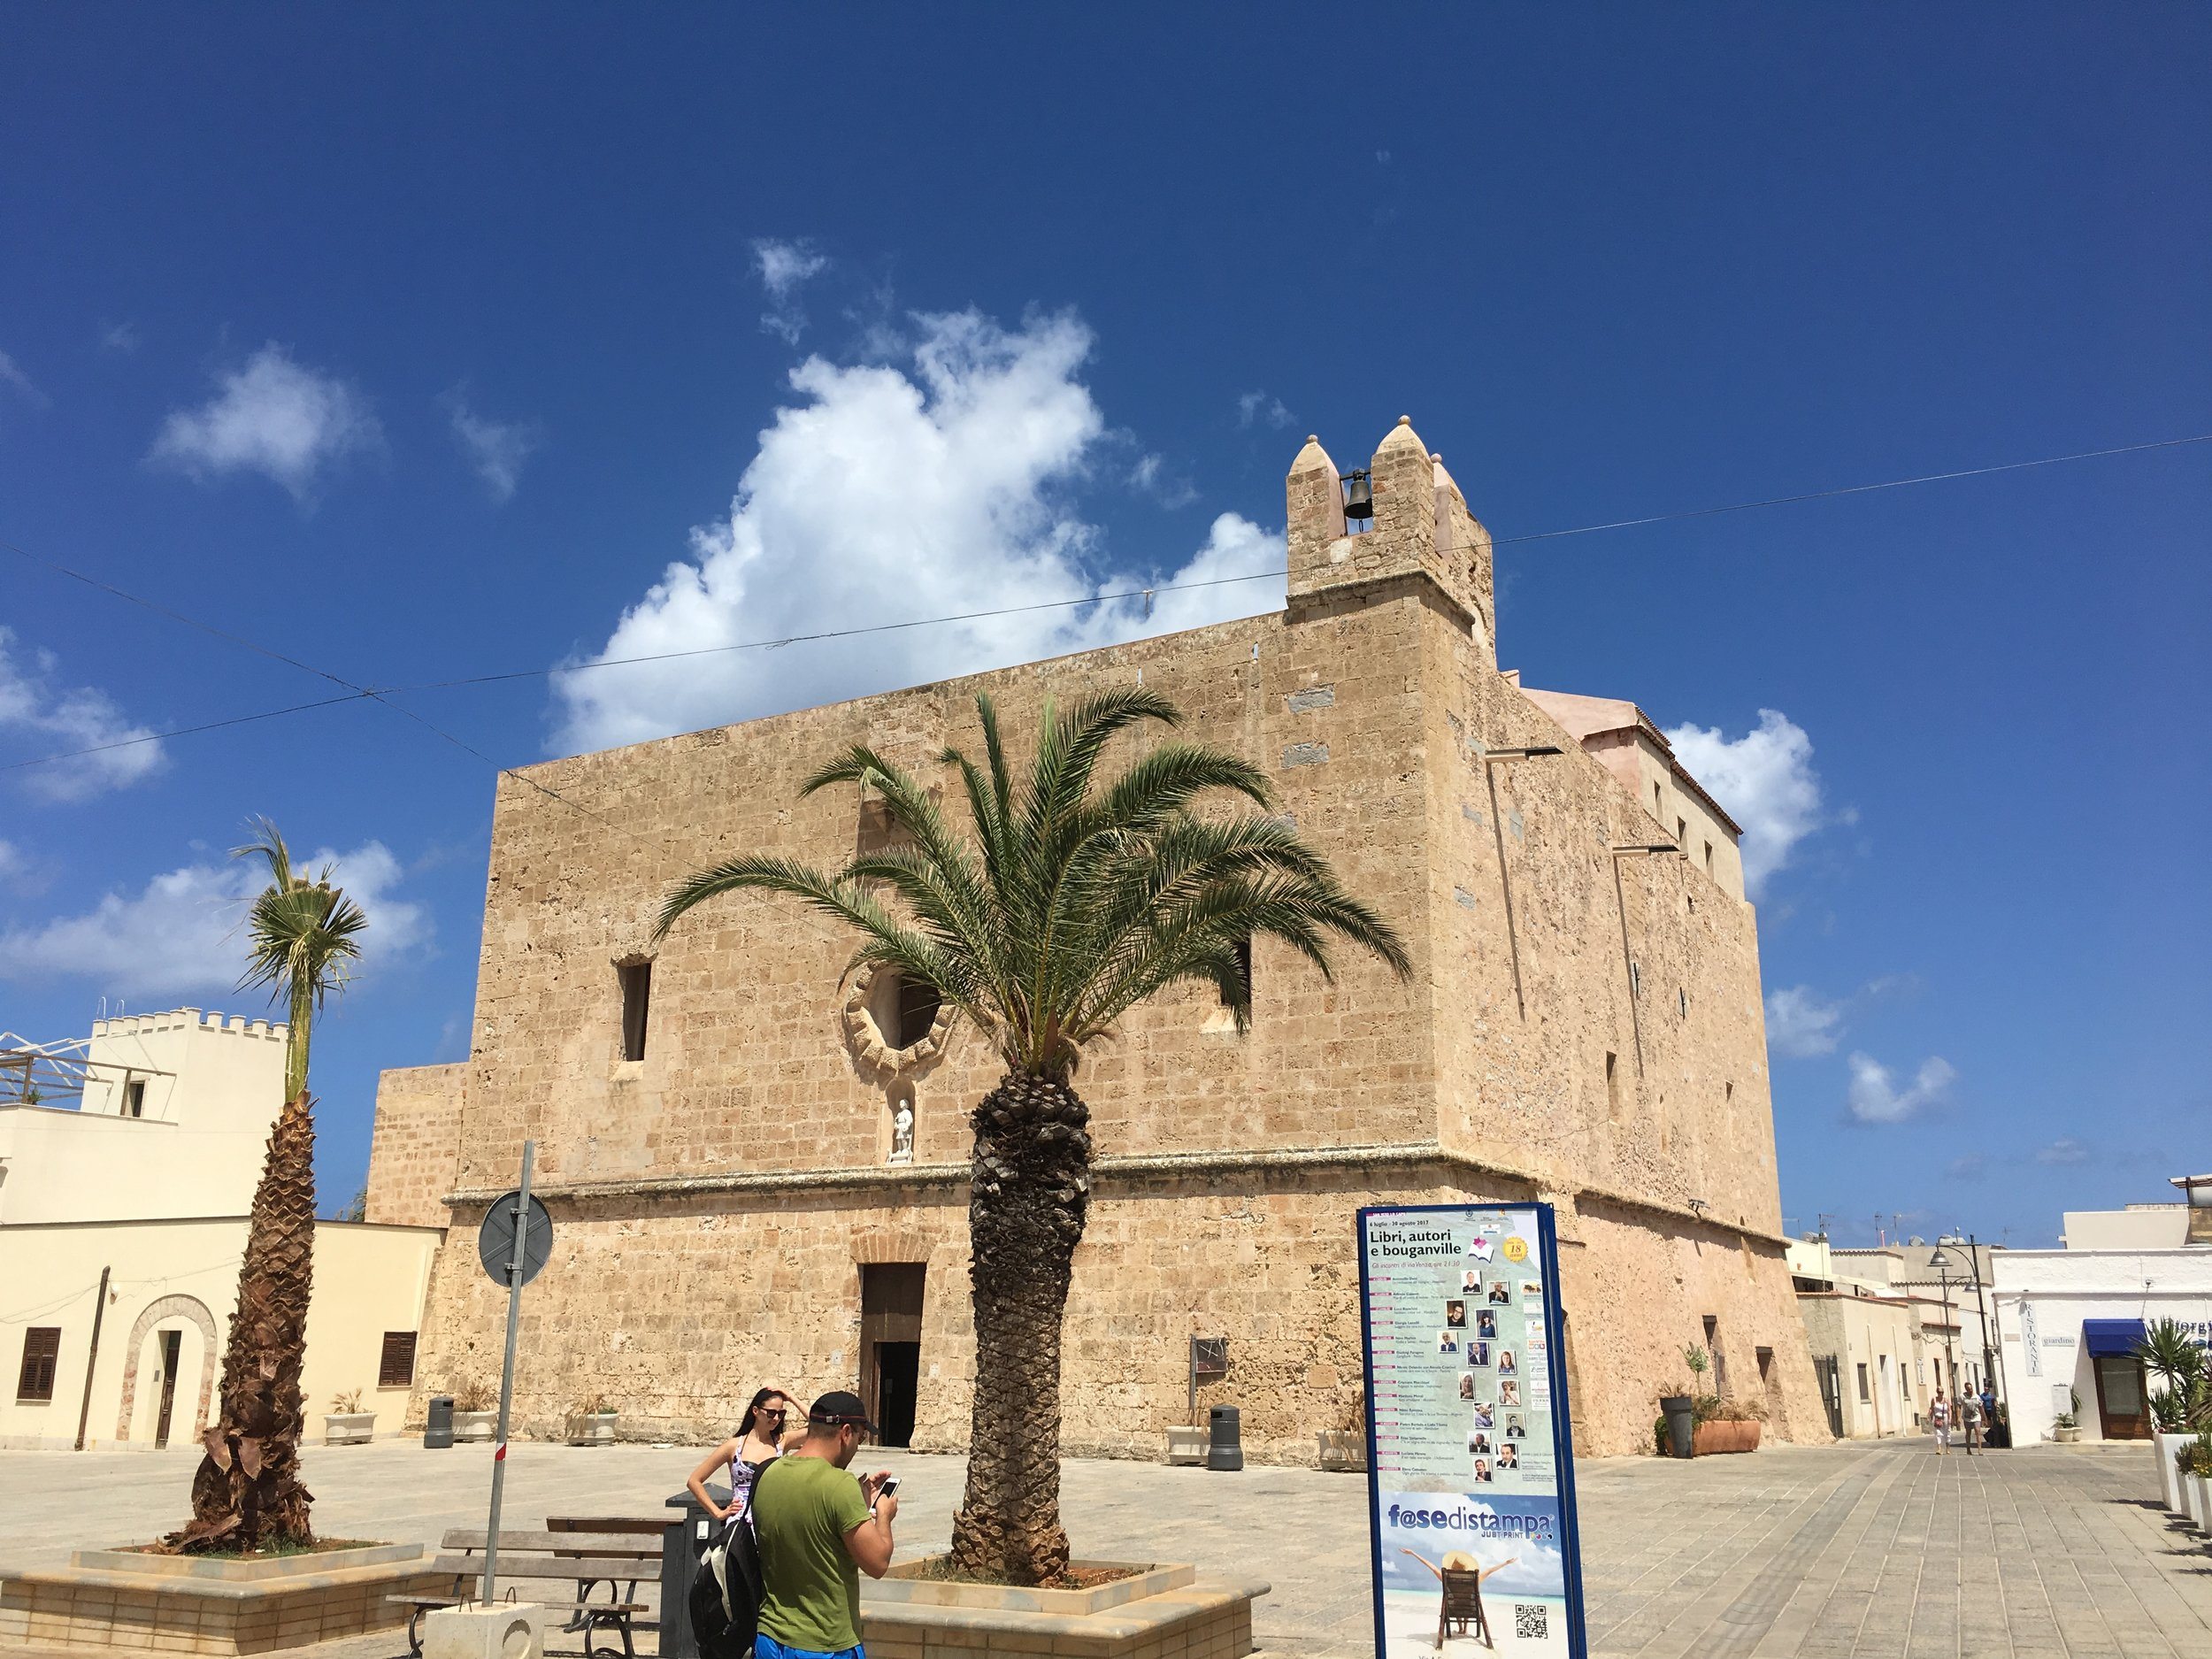 Town centre and church, San Vito Lo Capo. We rented bikes with kid seats on the back to get around.